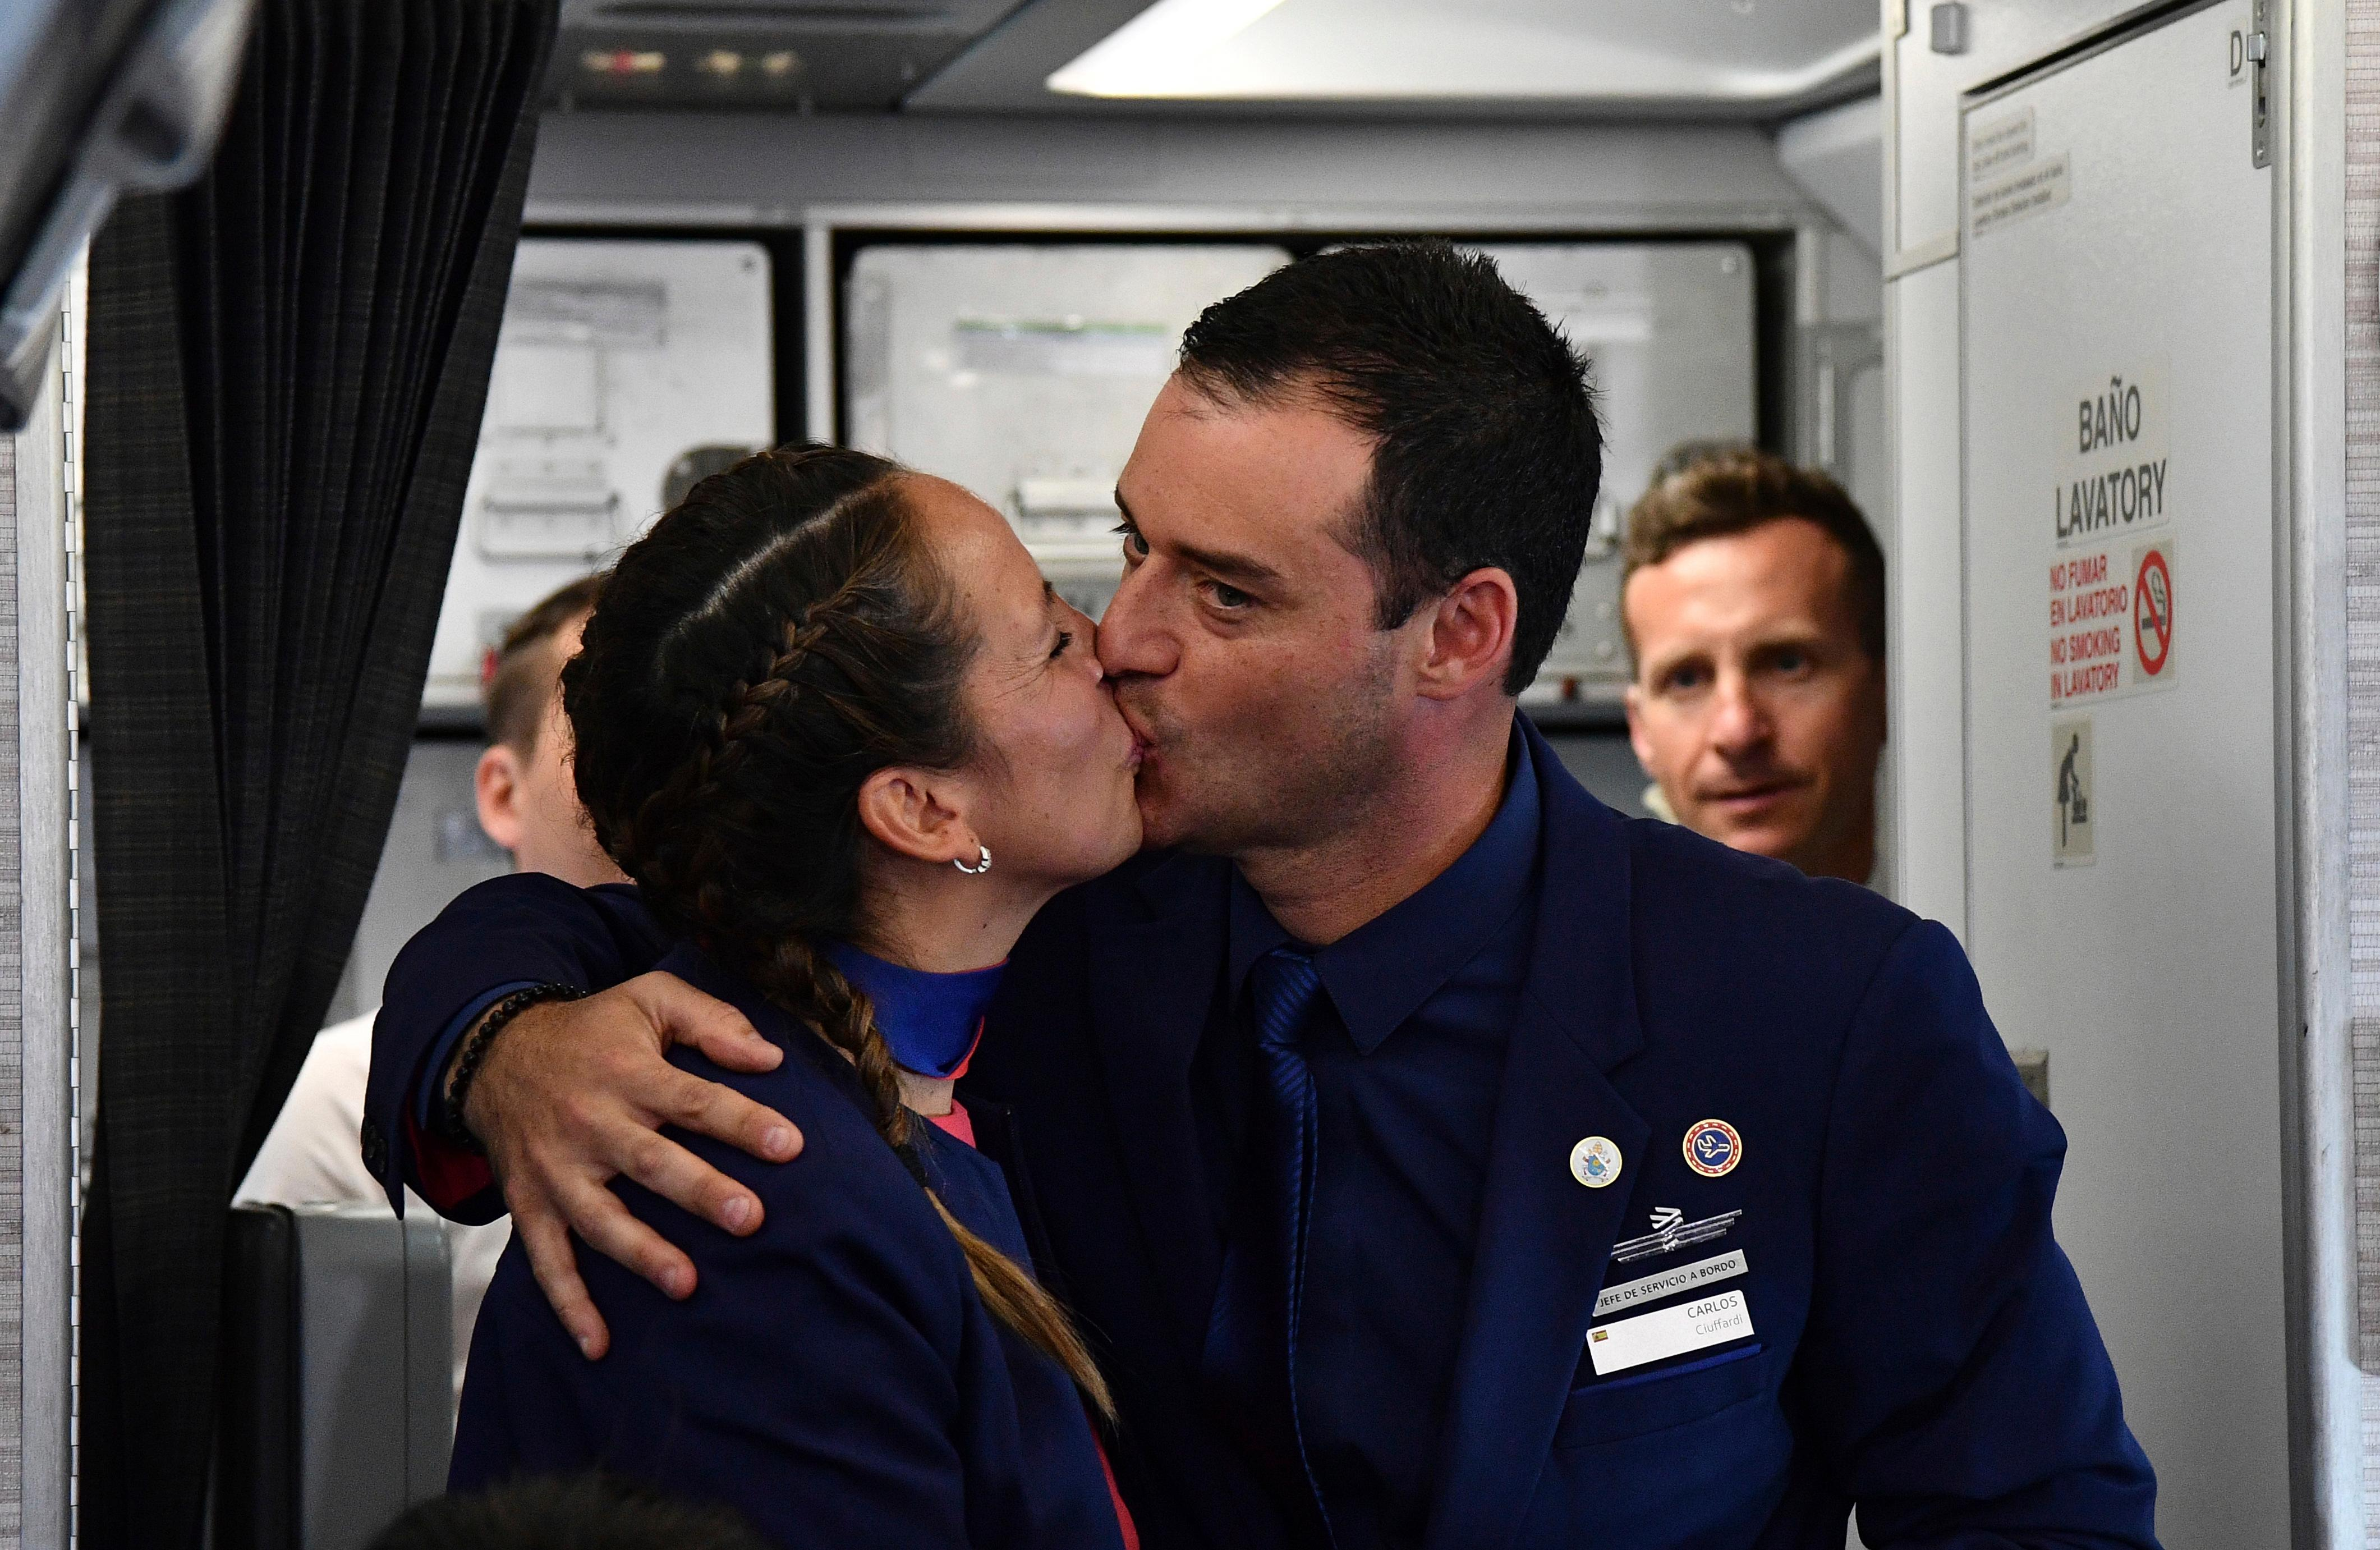 Crew members Paula Podest and Carlos Ciufffardi kiss before journalists after being married by Pope Francis during the flight between Santiago and the northern city of Iquique, Chile, Thursday, Jan. 18, 2018. Pope Francis celebrated the first-ever airborne papal wedding, marrying these two flight attendants from Chile's flagship airline during the flight. The couple had been married civilly in 2010, however, they said they couldn't follow-up with a church ceremony because of the 2010 earthquake that hit Chile. (Vincenzo Pinto, POOL via AP)